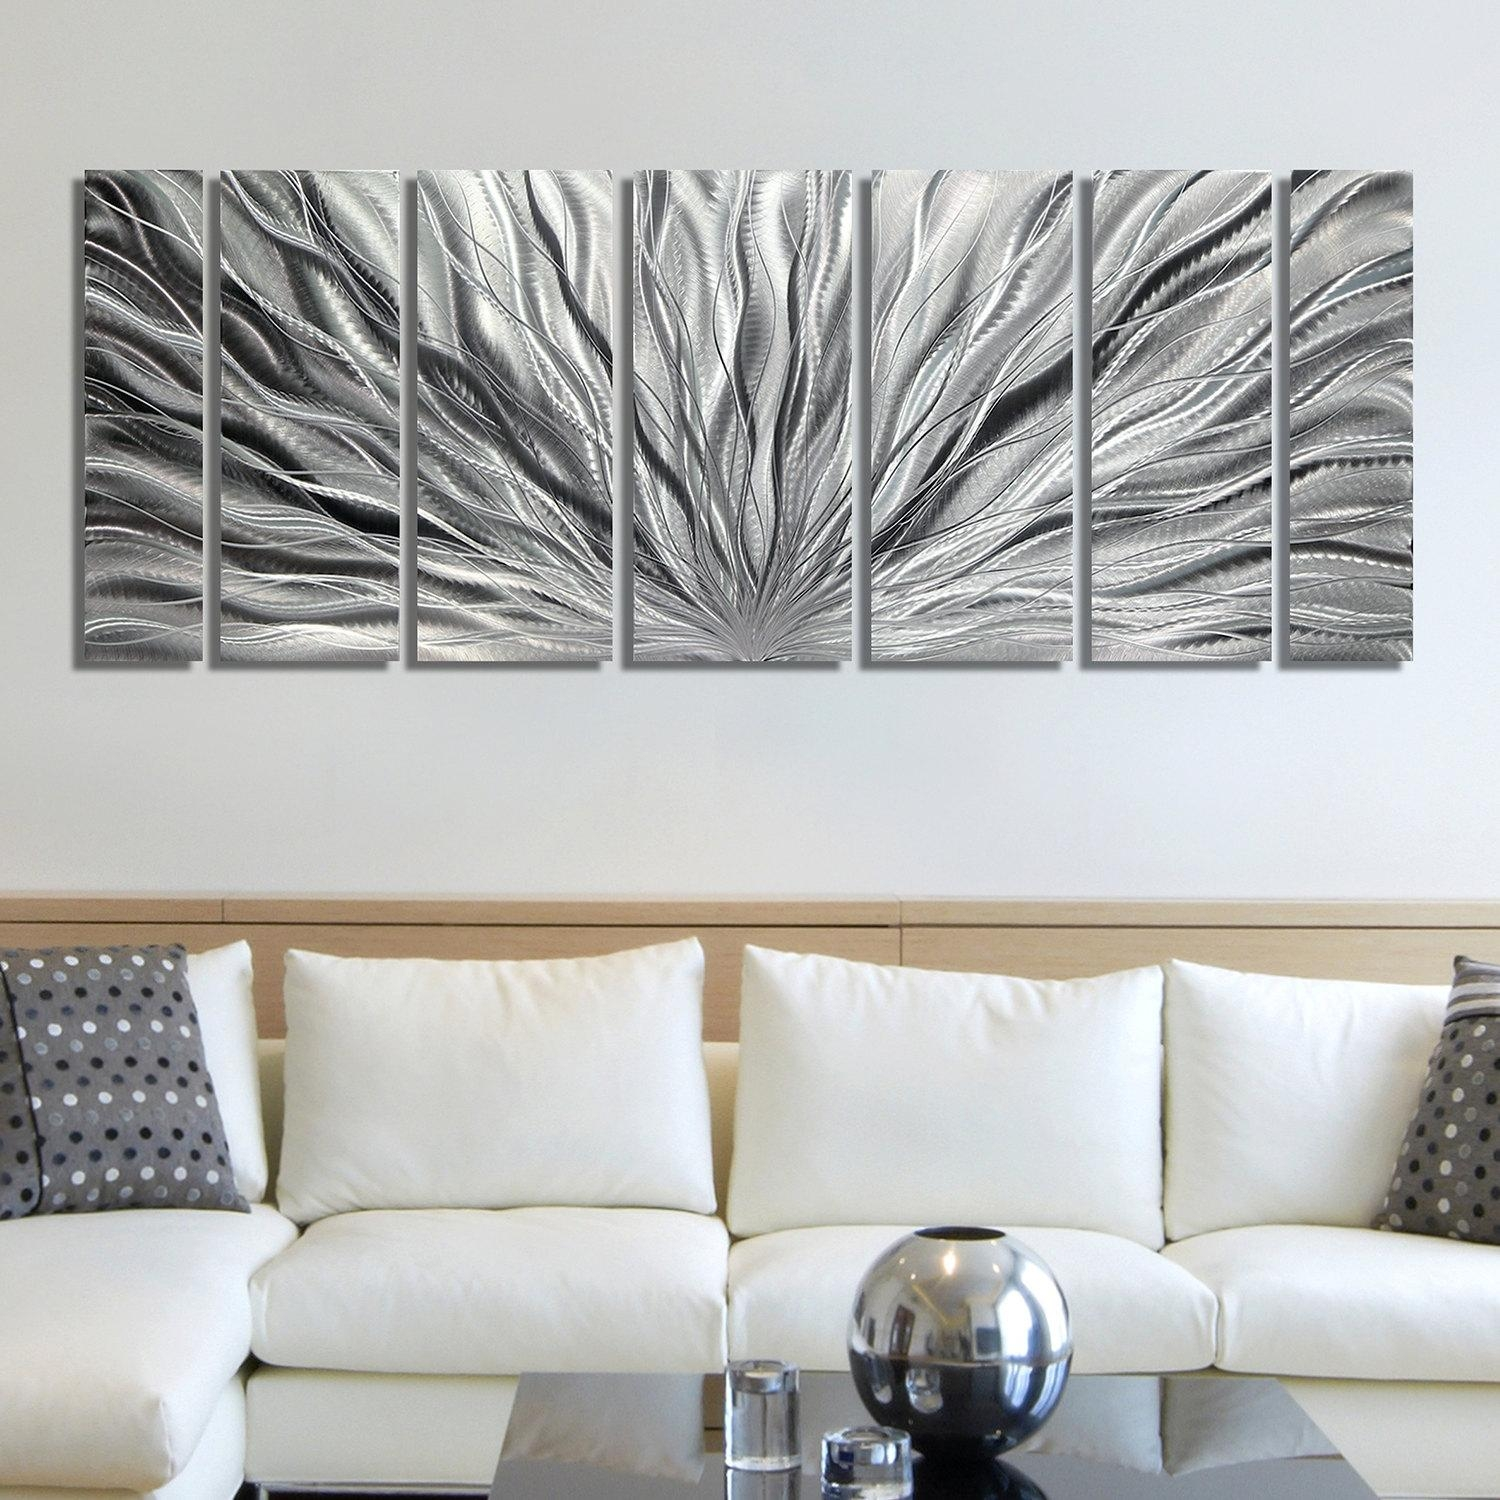 Sale Large Multi Panel Metal Wall Art In All Silver For Large Abstract Metal Wall Art (View 11 of 20)